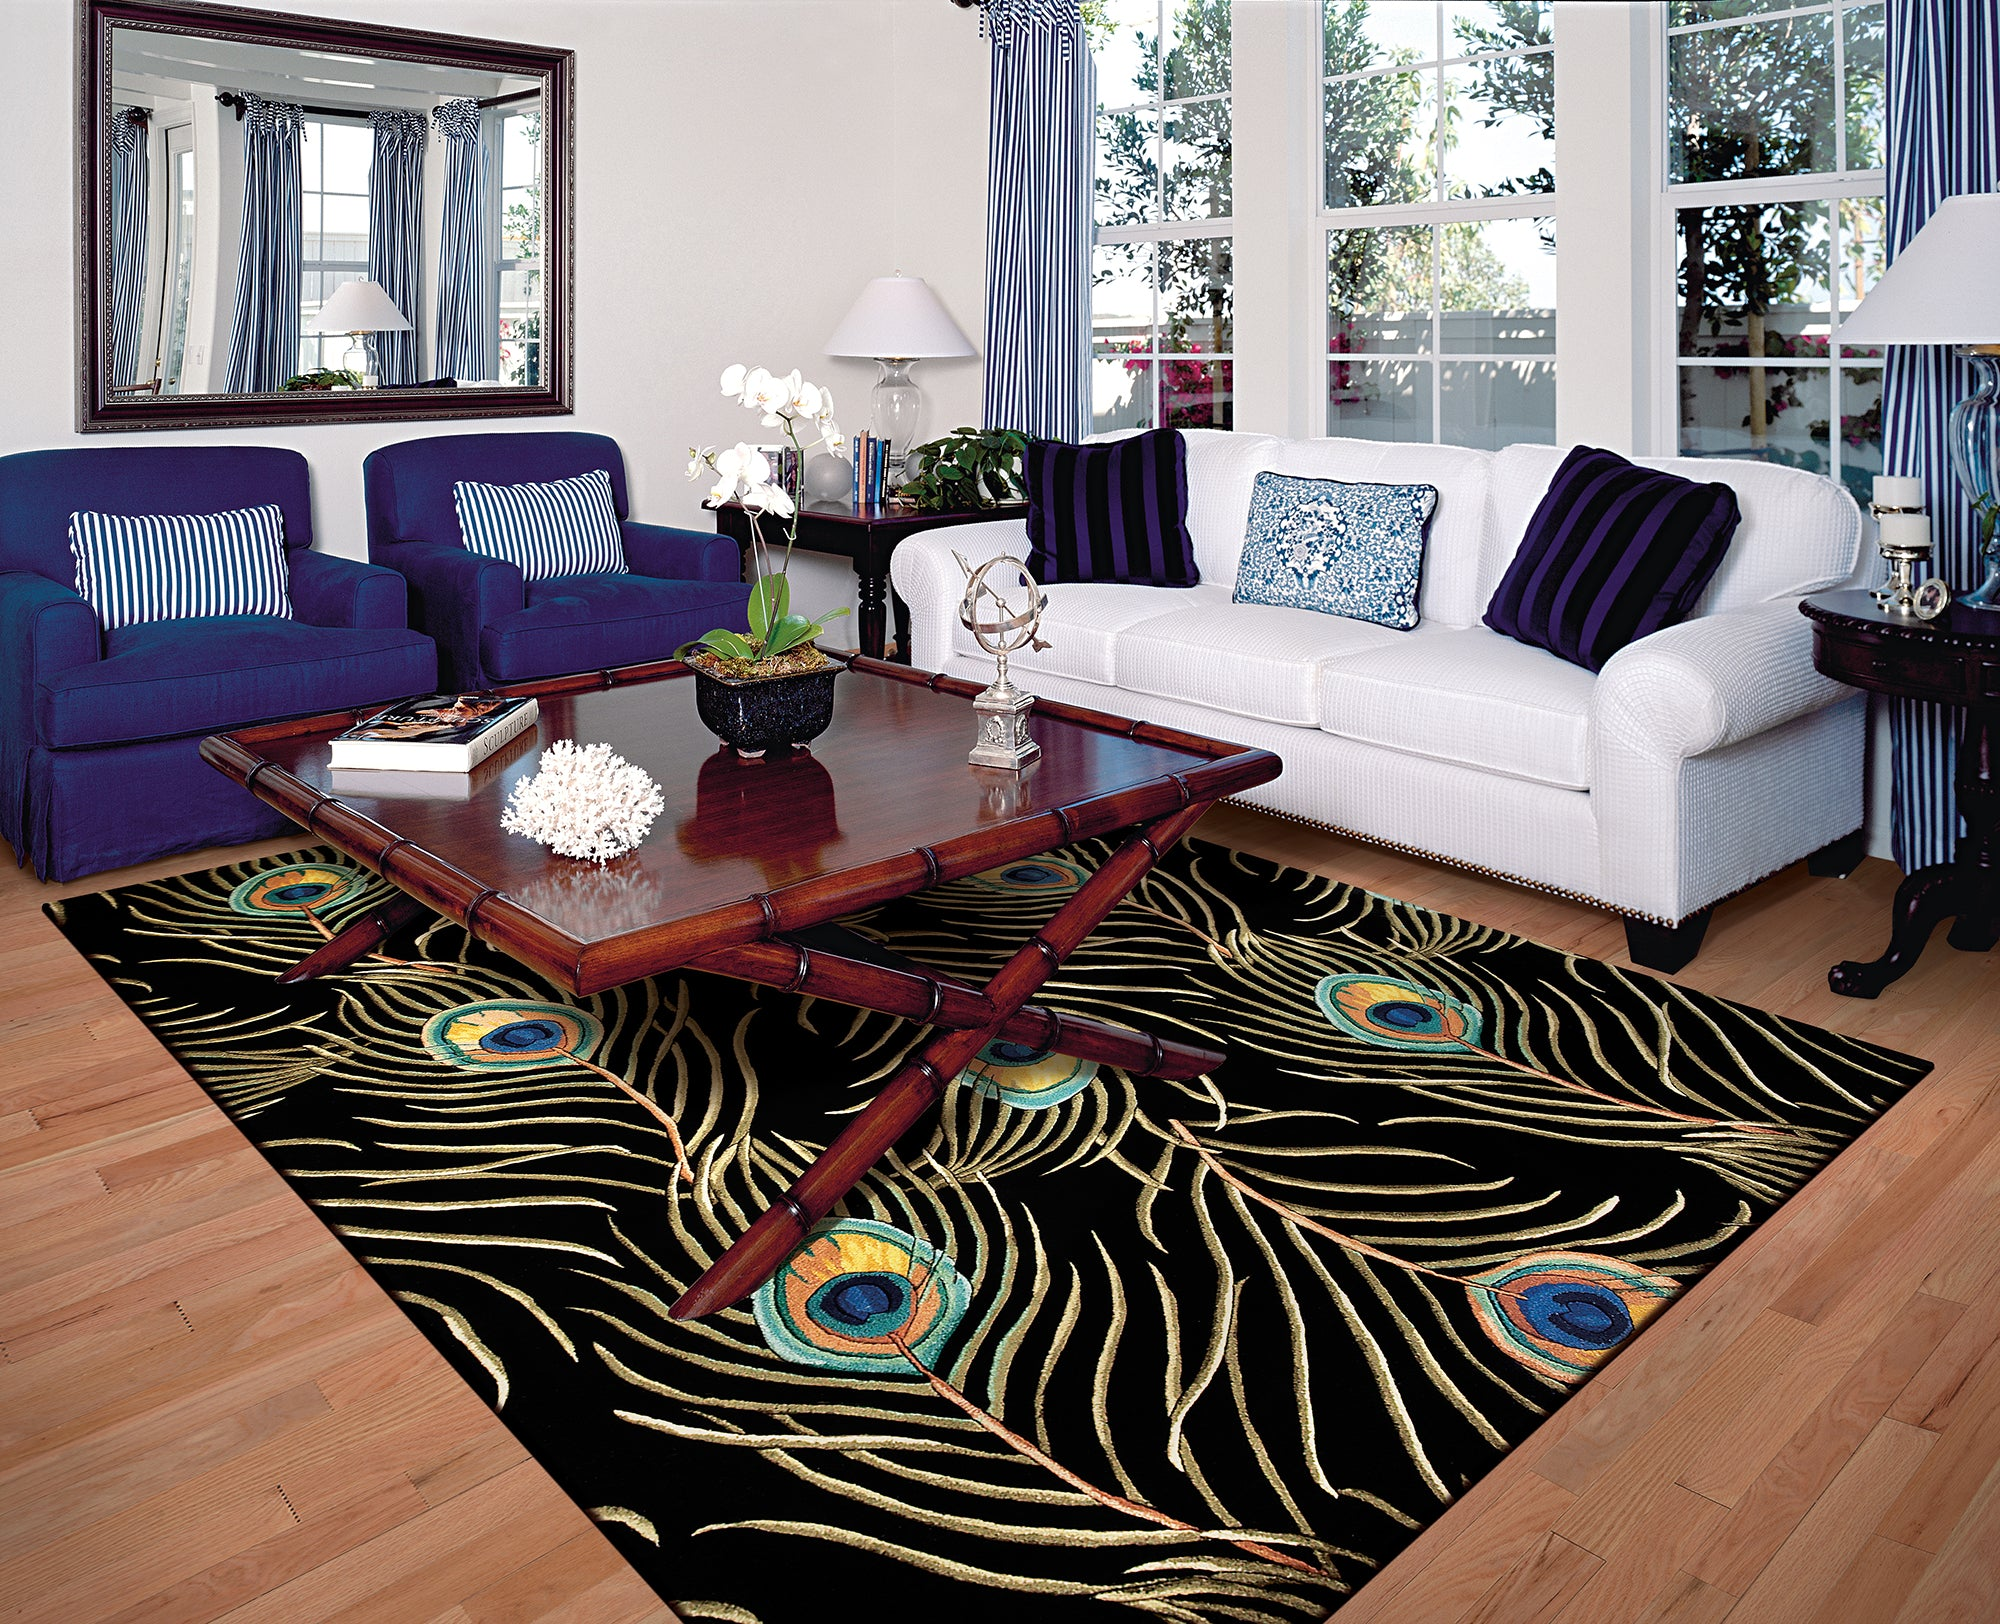 Kas Rugs Catalina 0738 Black Peacock Feathers Area Rug